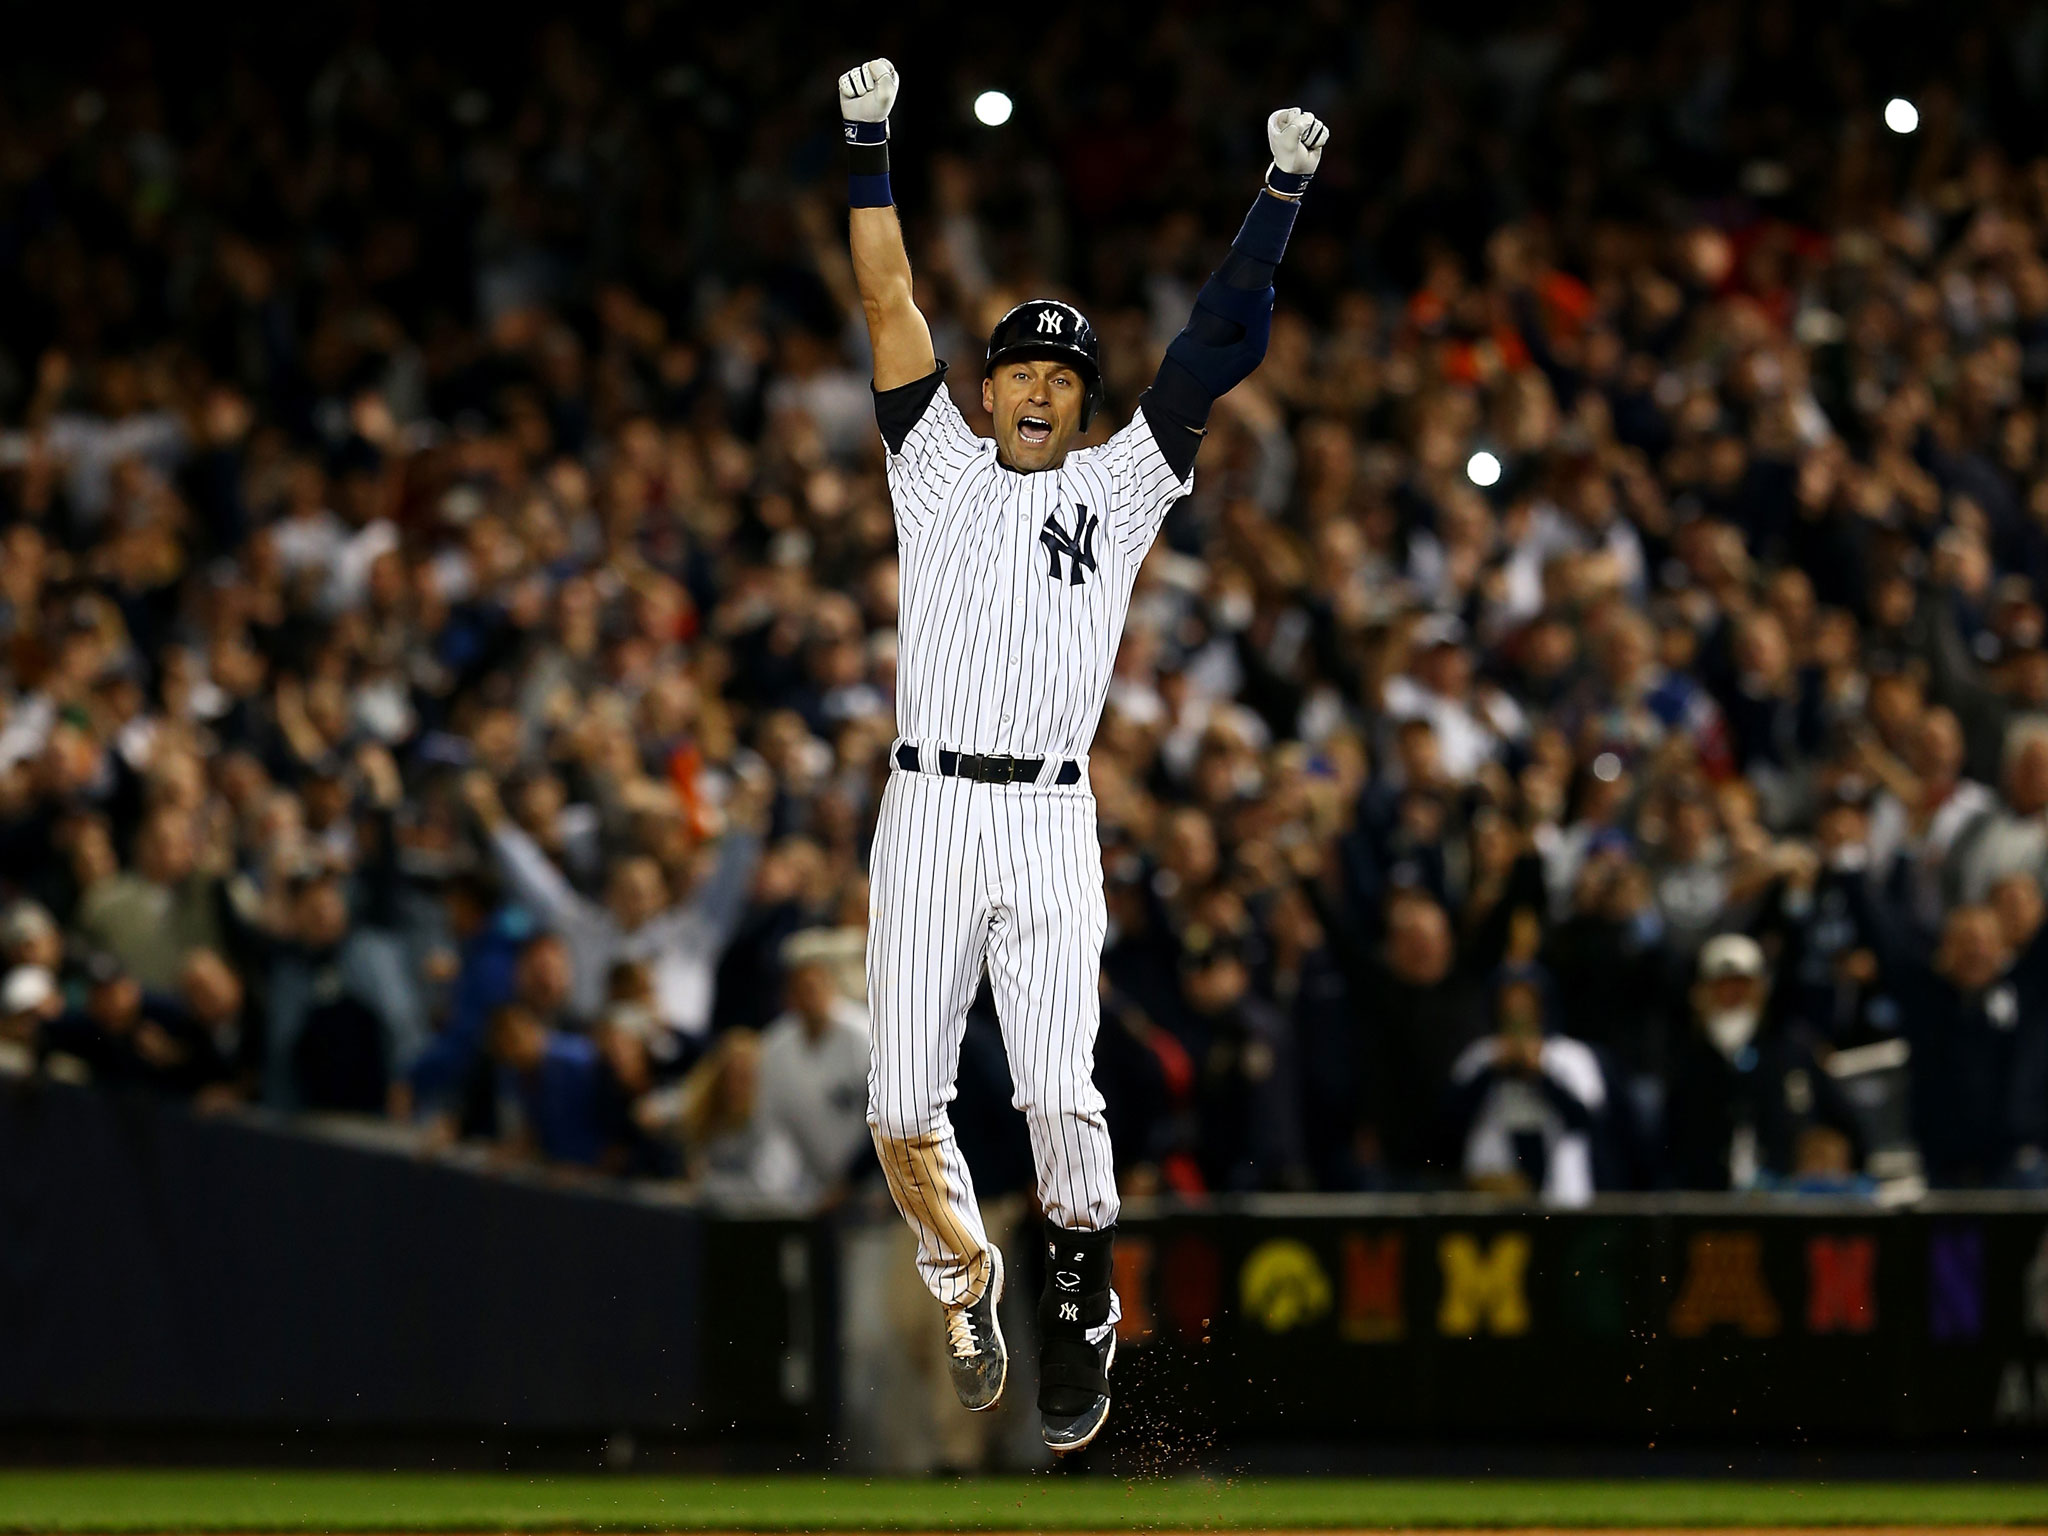 Derek Jeter Background Posted By Ethan Tremblay